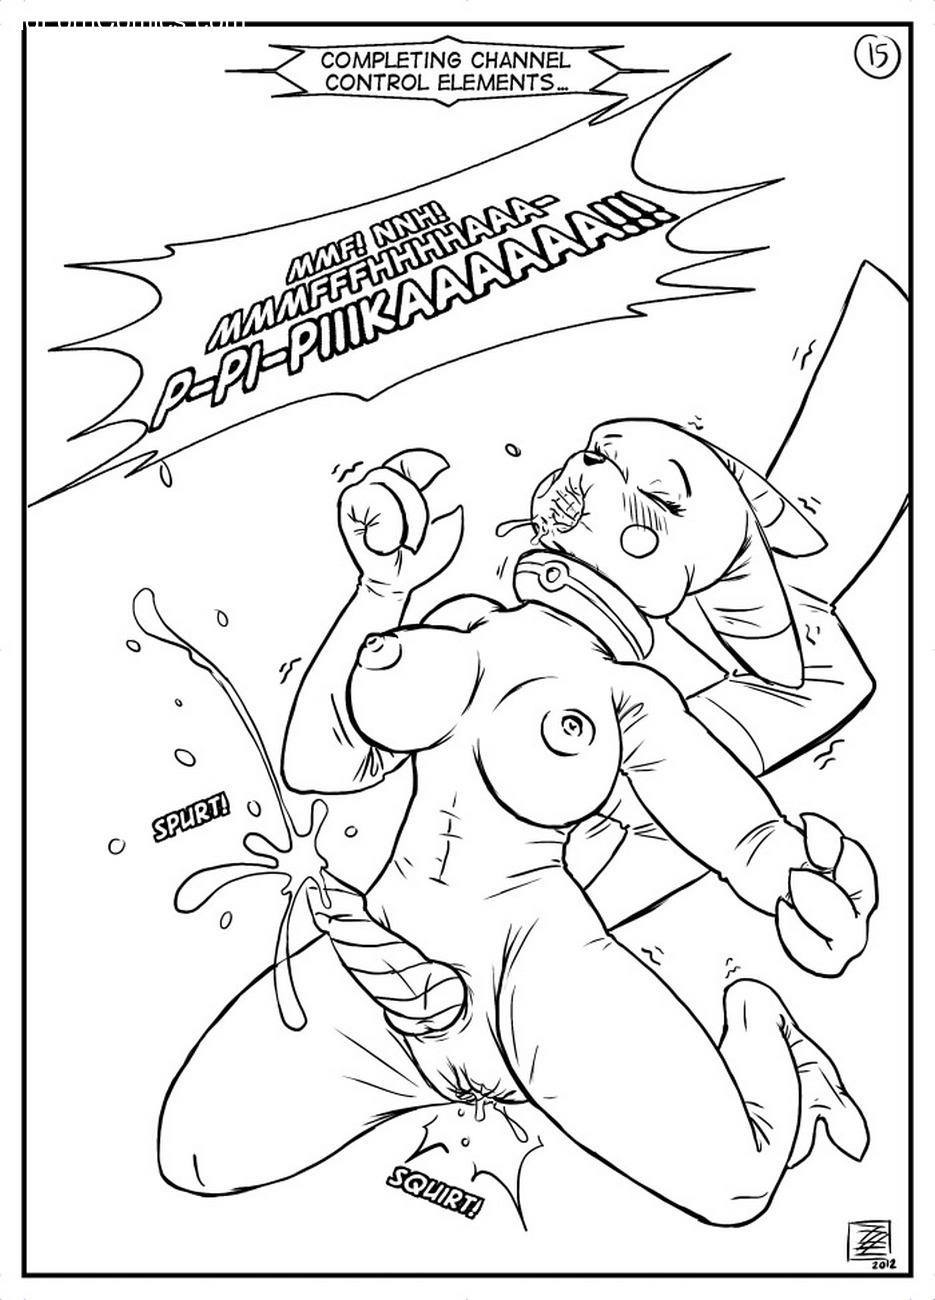 Pikaslut 16 free sex comic